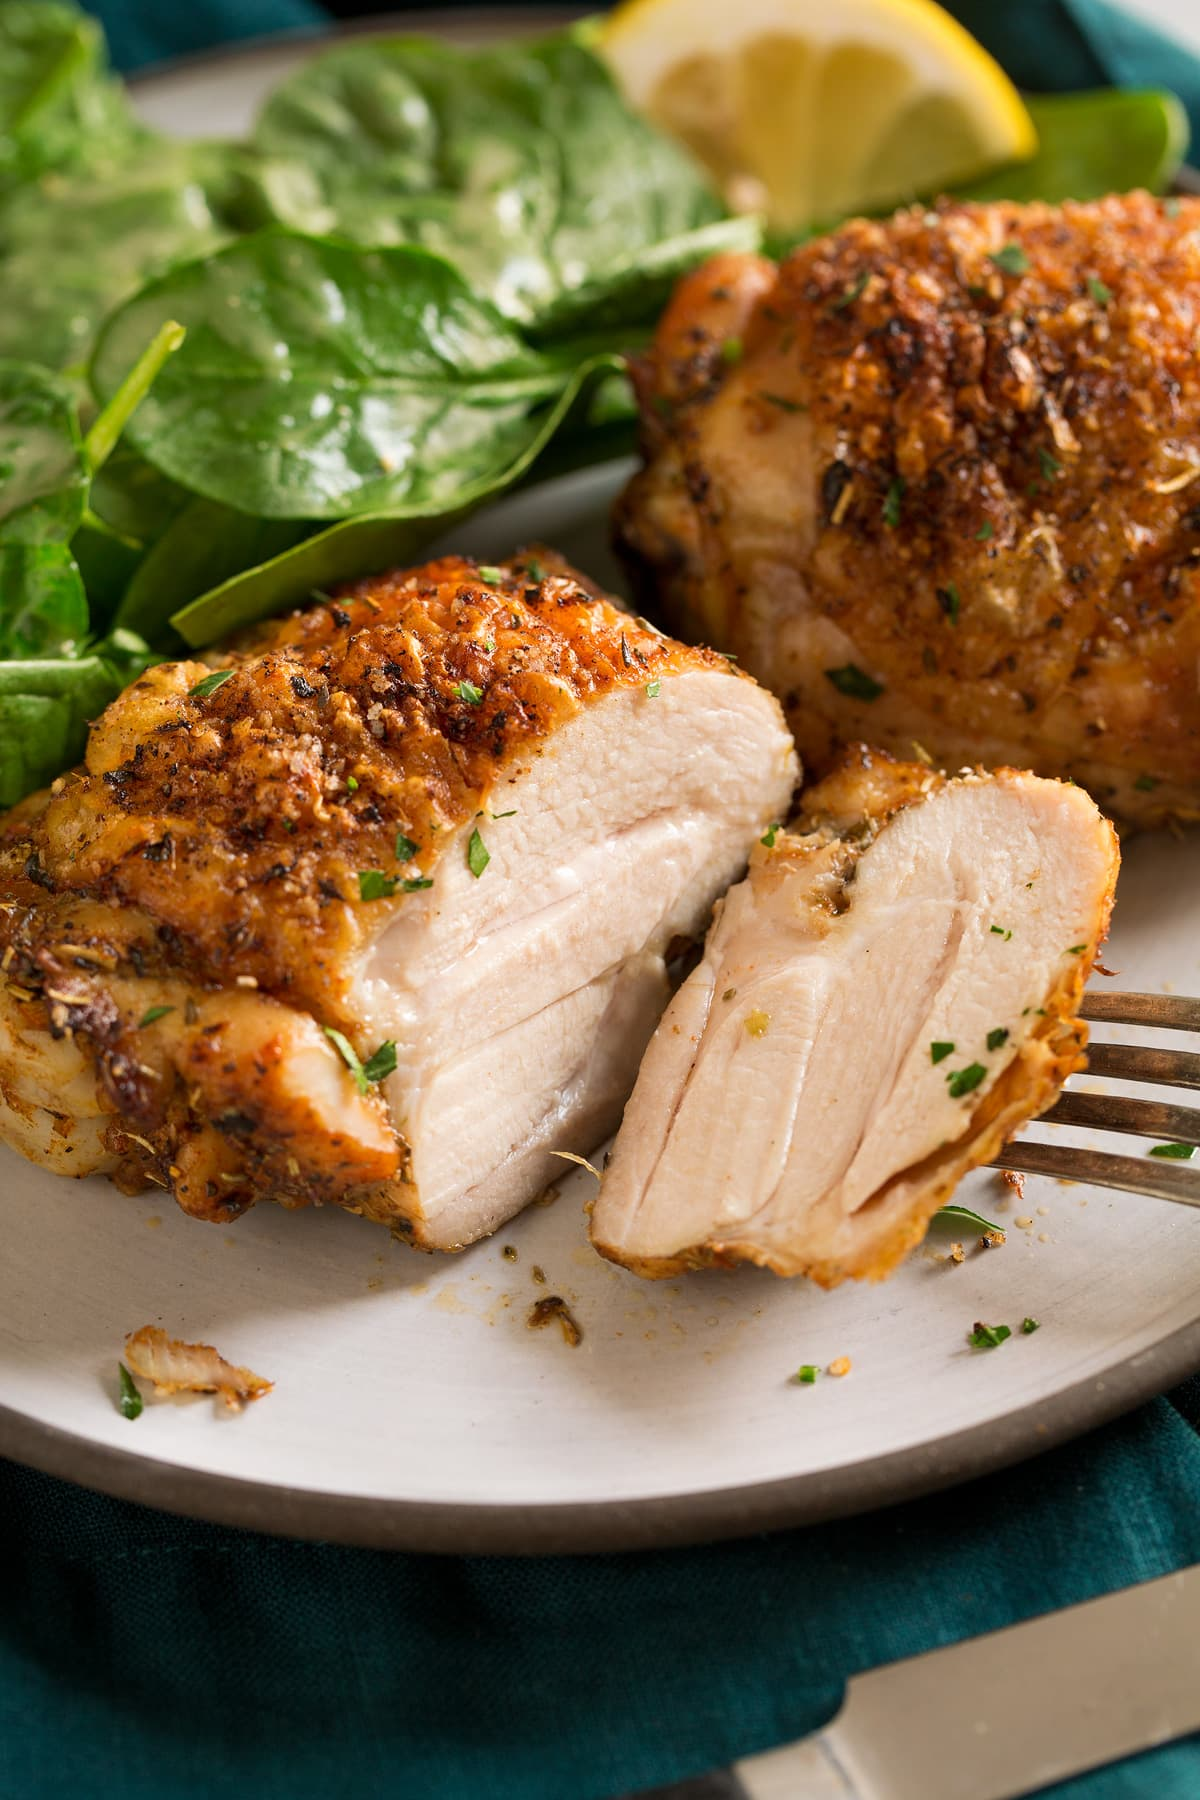 Baked chicken thigh sliced into on a serving plate.